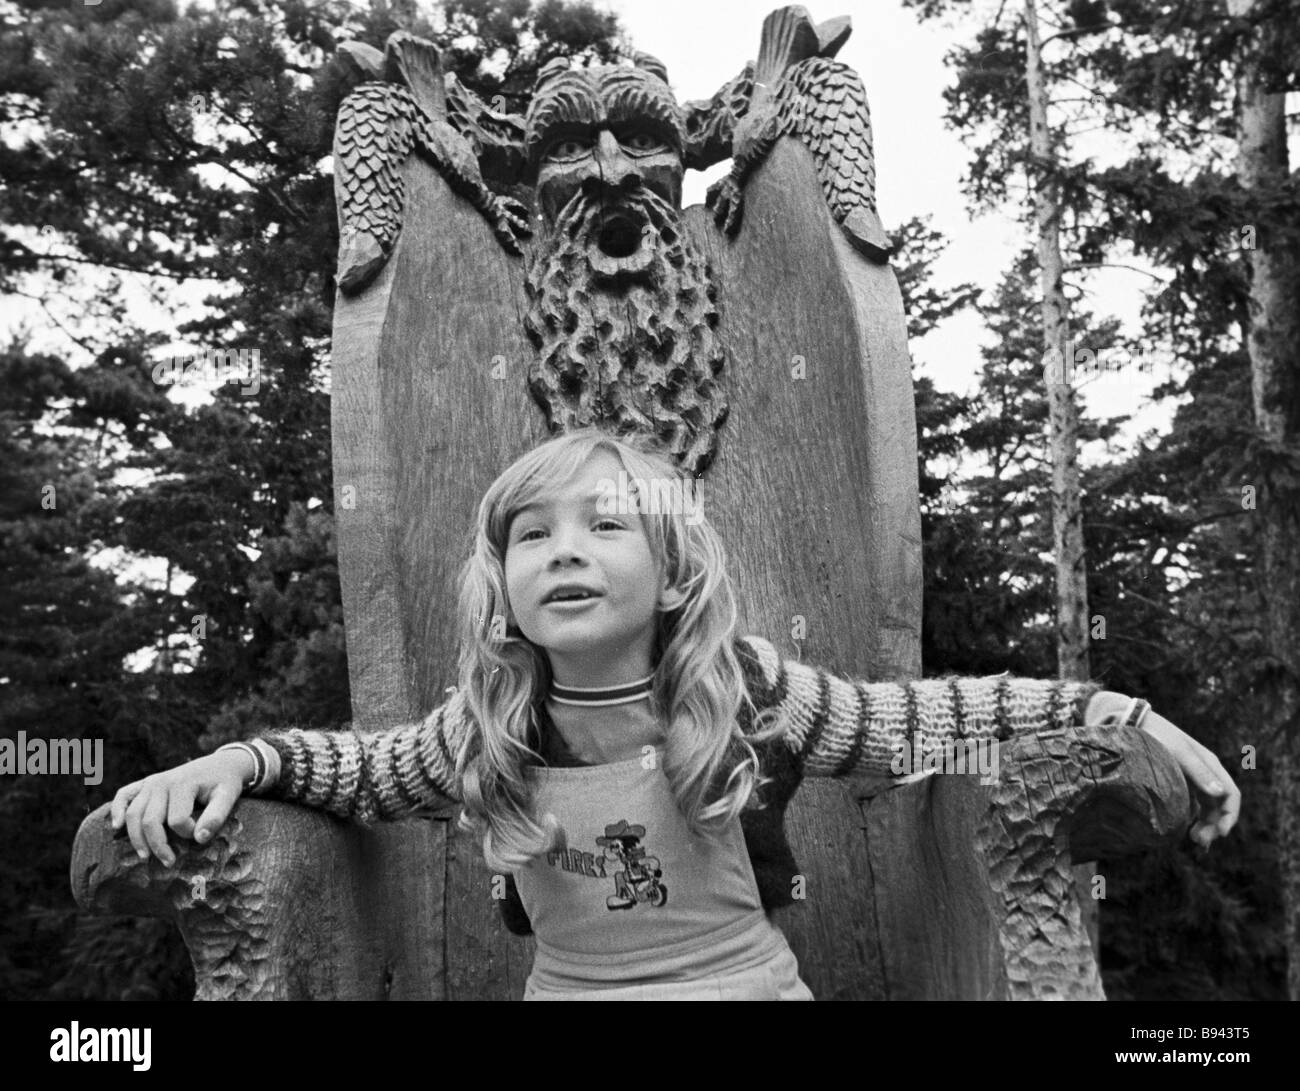 A girl sits in a fancy chair in the park on the Witches mountain where a set of wooden sculptures was created - Stock Image